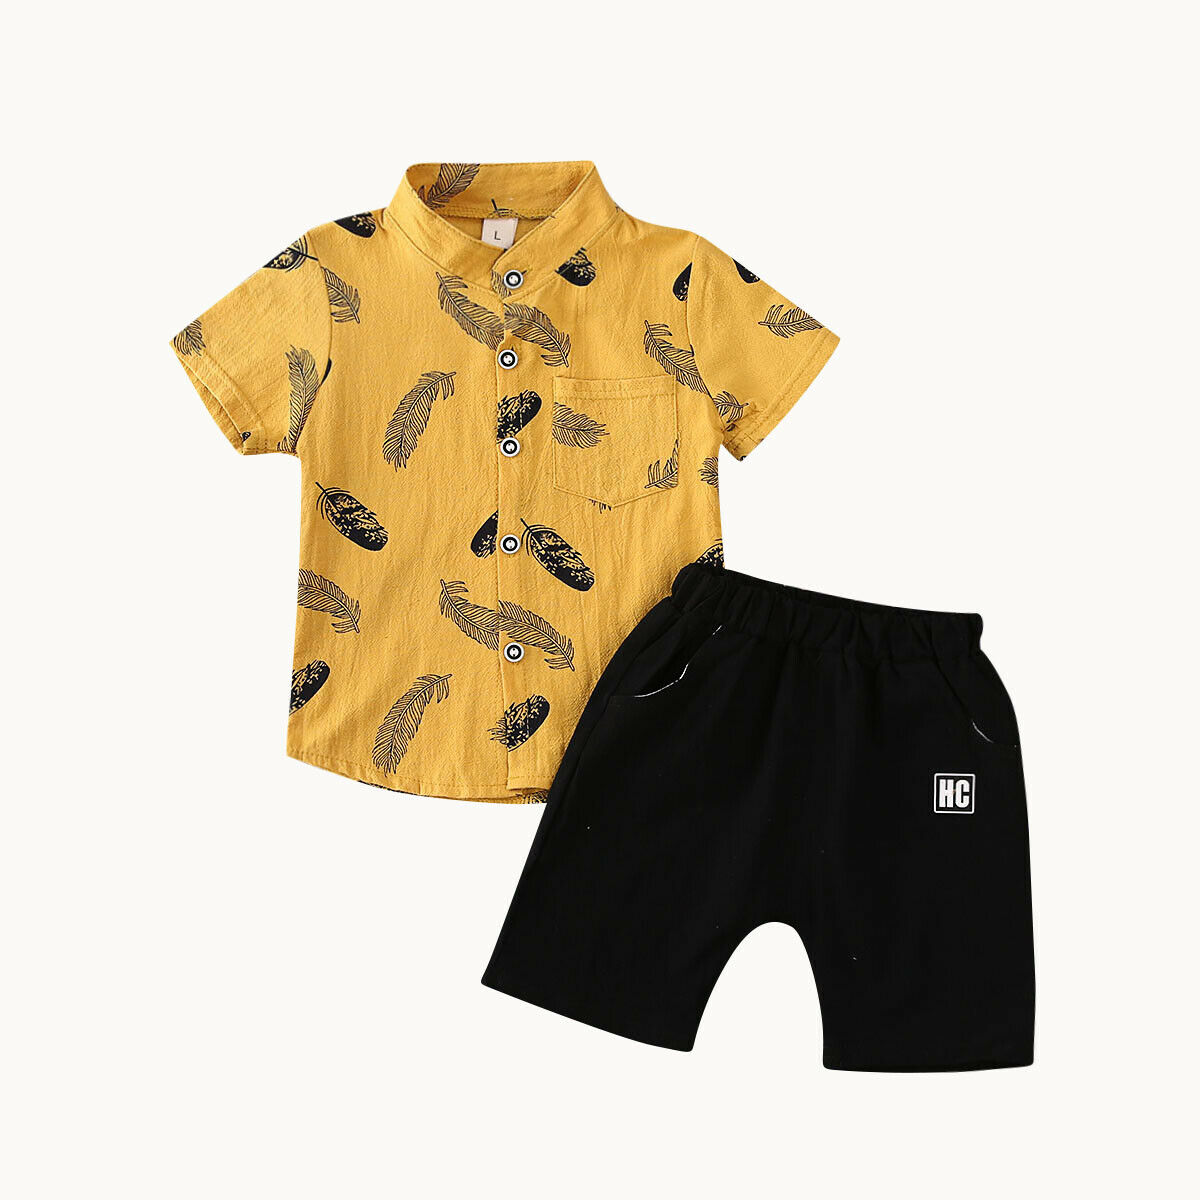 New Kids Baby Boy Gentleman Clothes Short Sleeve T Shirt Tops + Shorts Pants Outfit Set Casual Infant Clothing Set Boys Suit